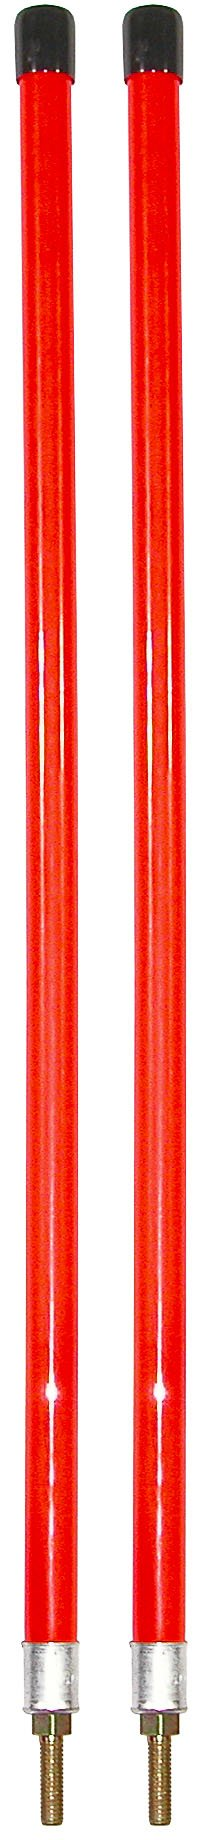 Buyers Products 1308103 Nylon Marker (Orange 24'' with Stud Mount) by Buyers Products